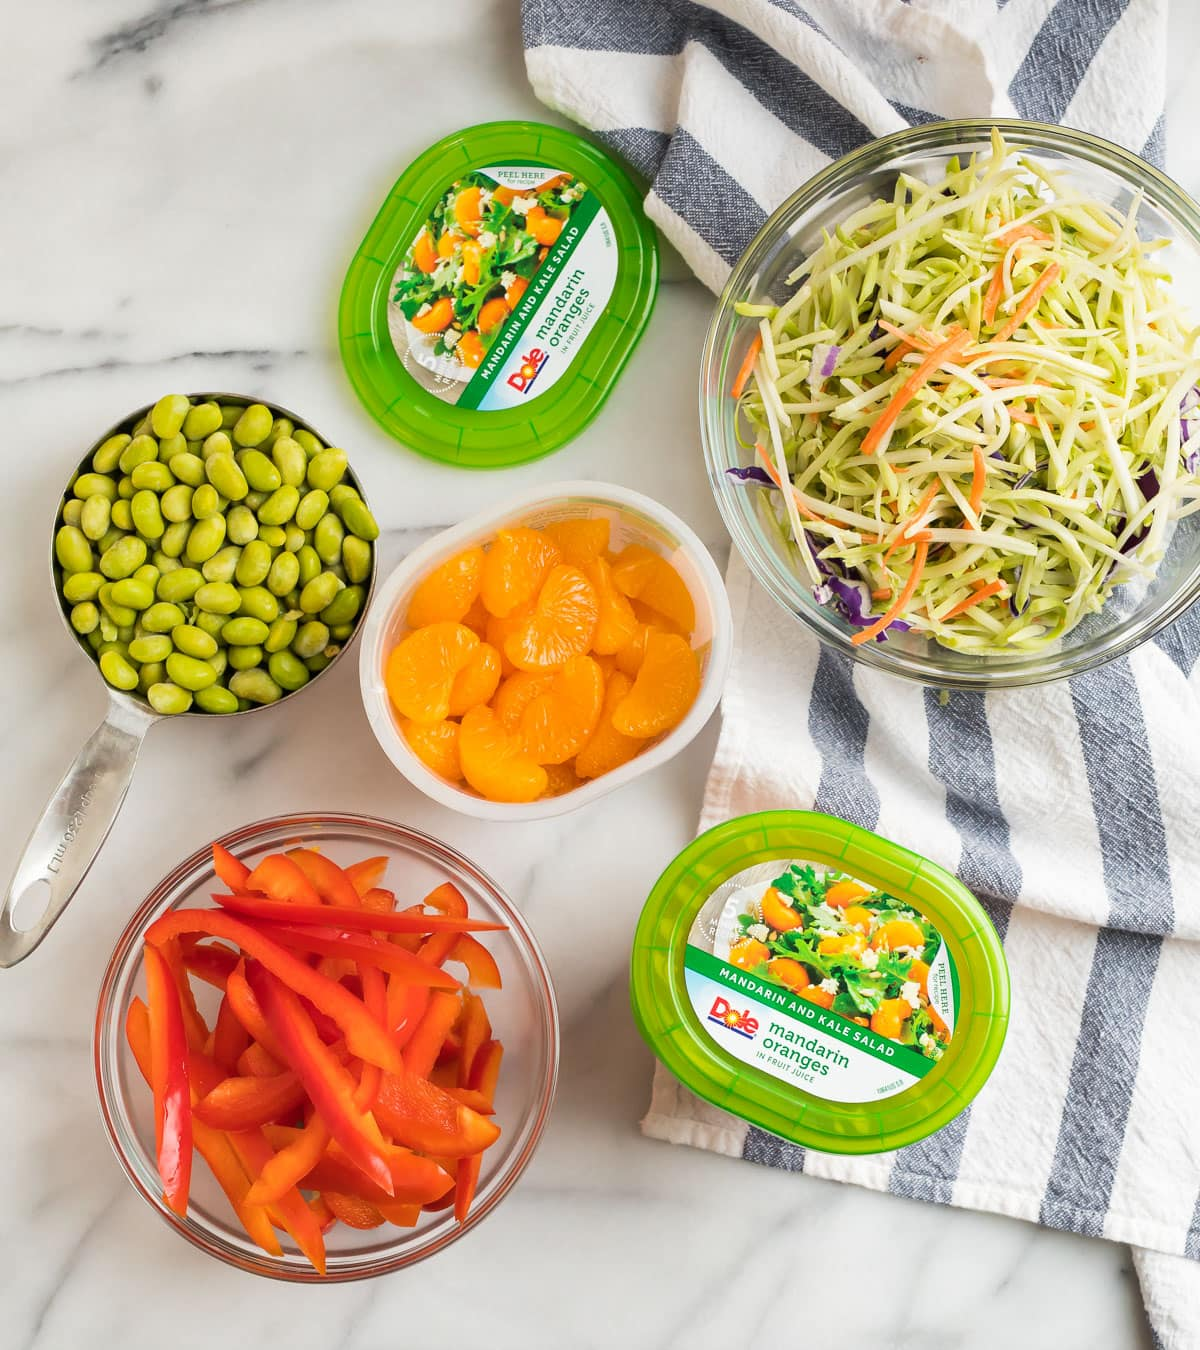 Ingredients for a healthy stir fry including edamame beans, red bell pepper, Mandarin oranges, and broccoli slaw